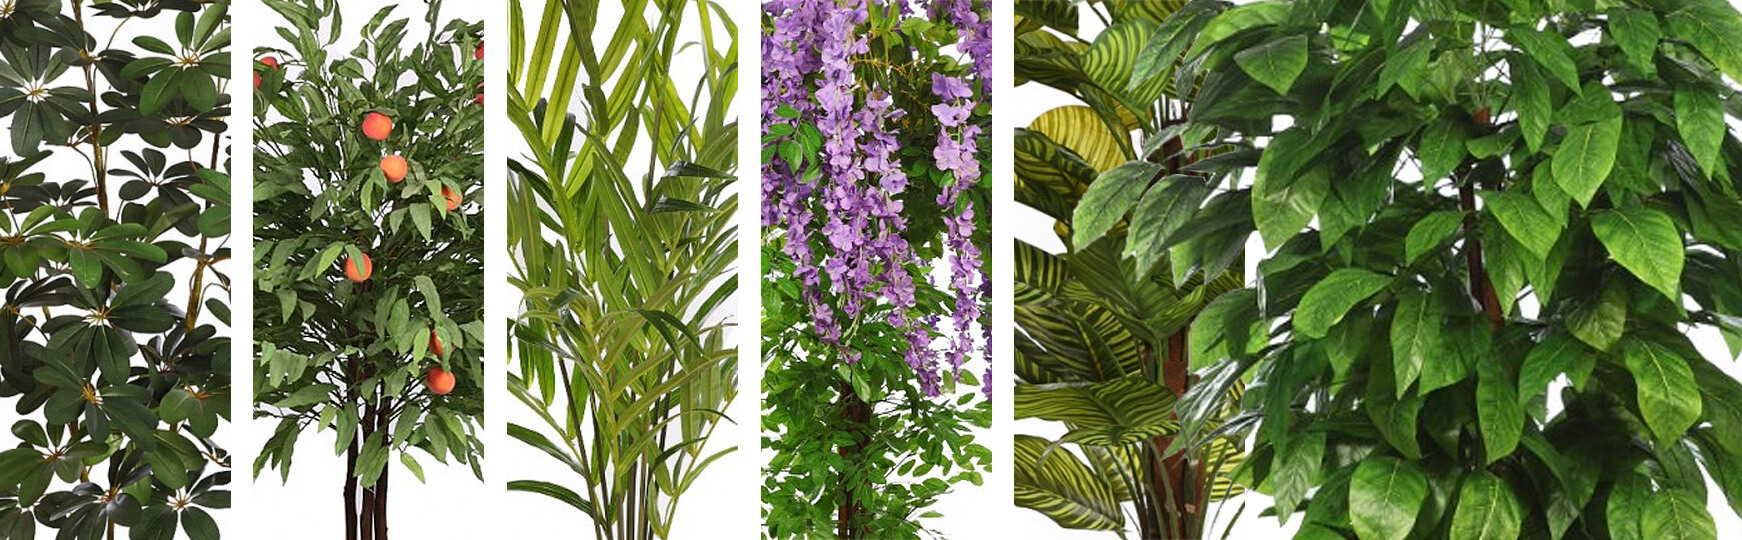 plantas artificiales grandes para decoración